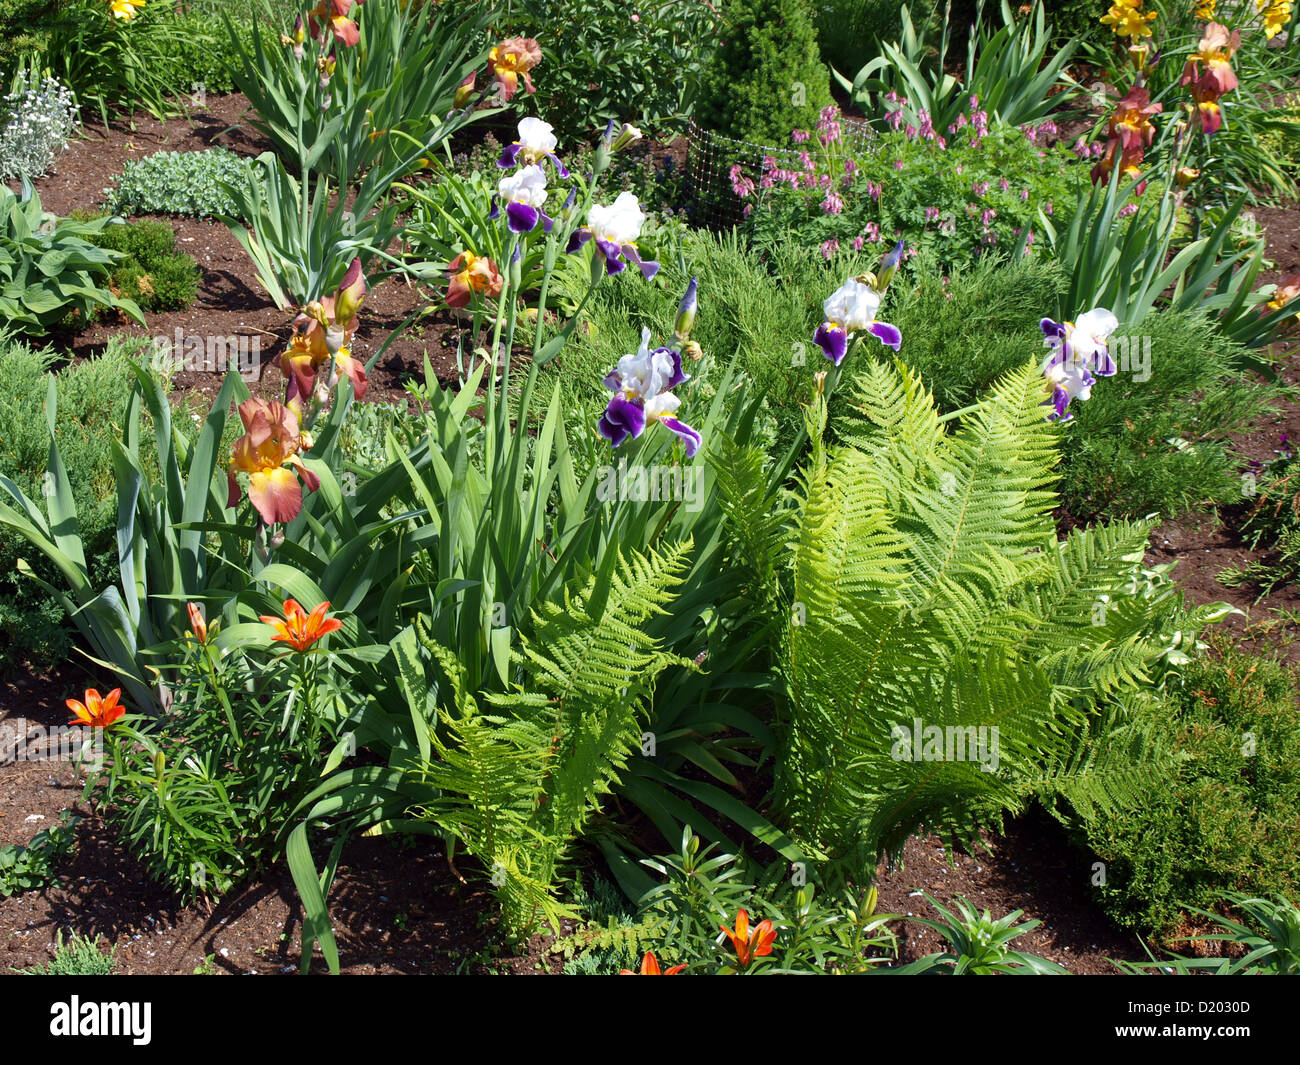 Flower bed with different kinds of flowers ferns crocuses flower bed with different kinds of flowers ferns crocuses lilies dhlflorist Choice Image